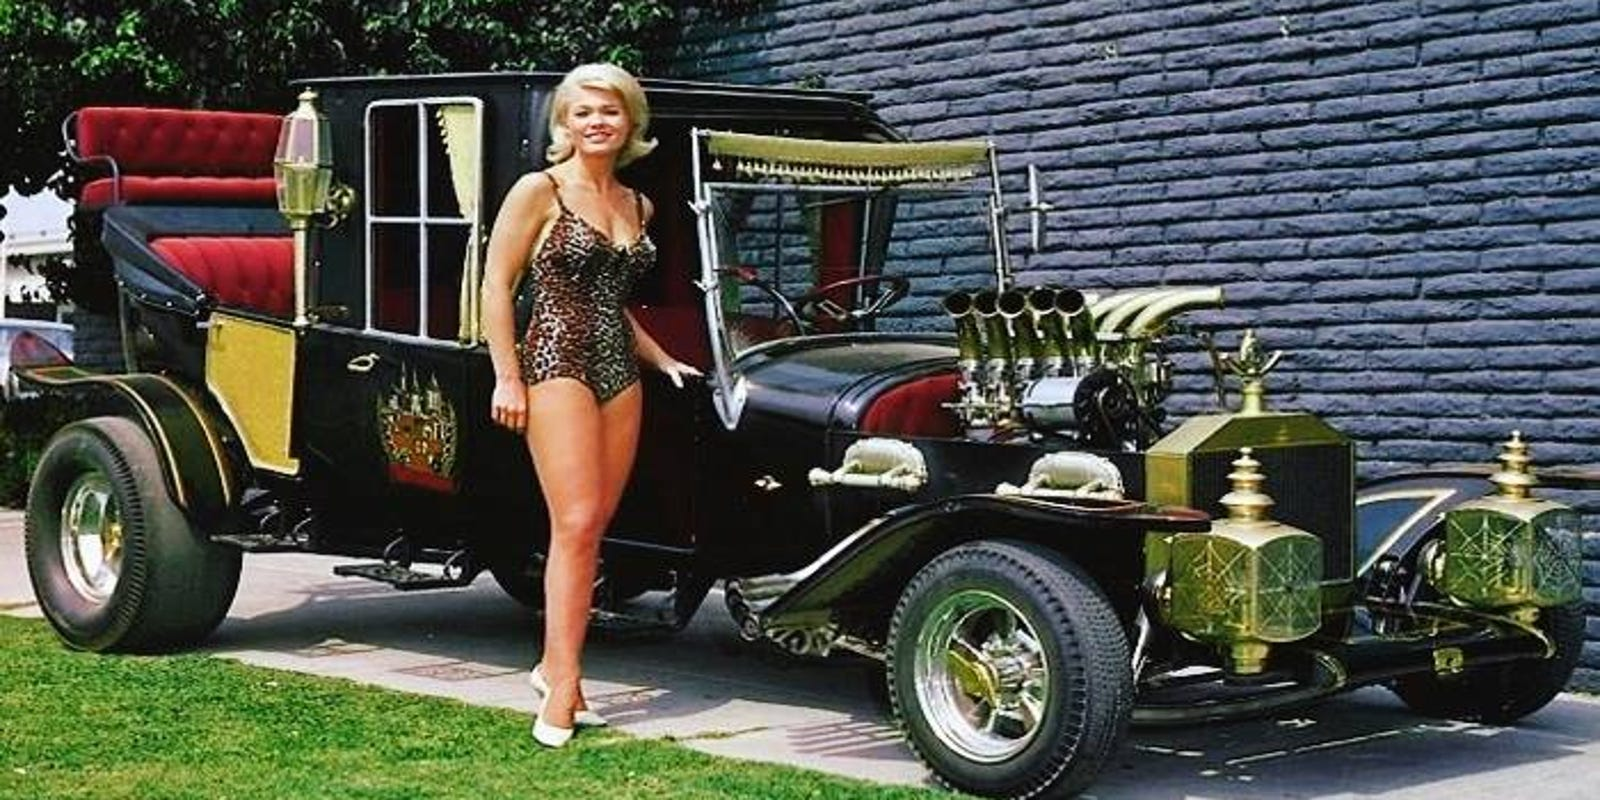 Image result for image, photo, picture, marilyn munster